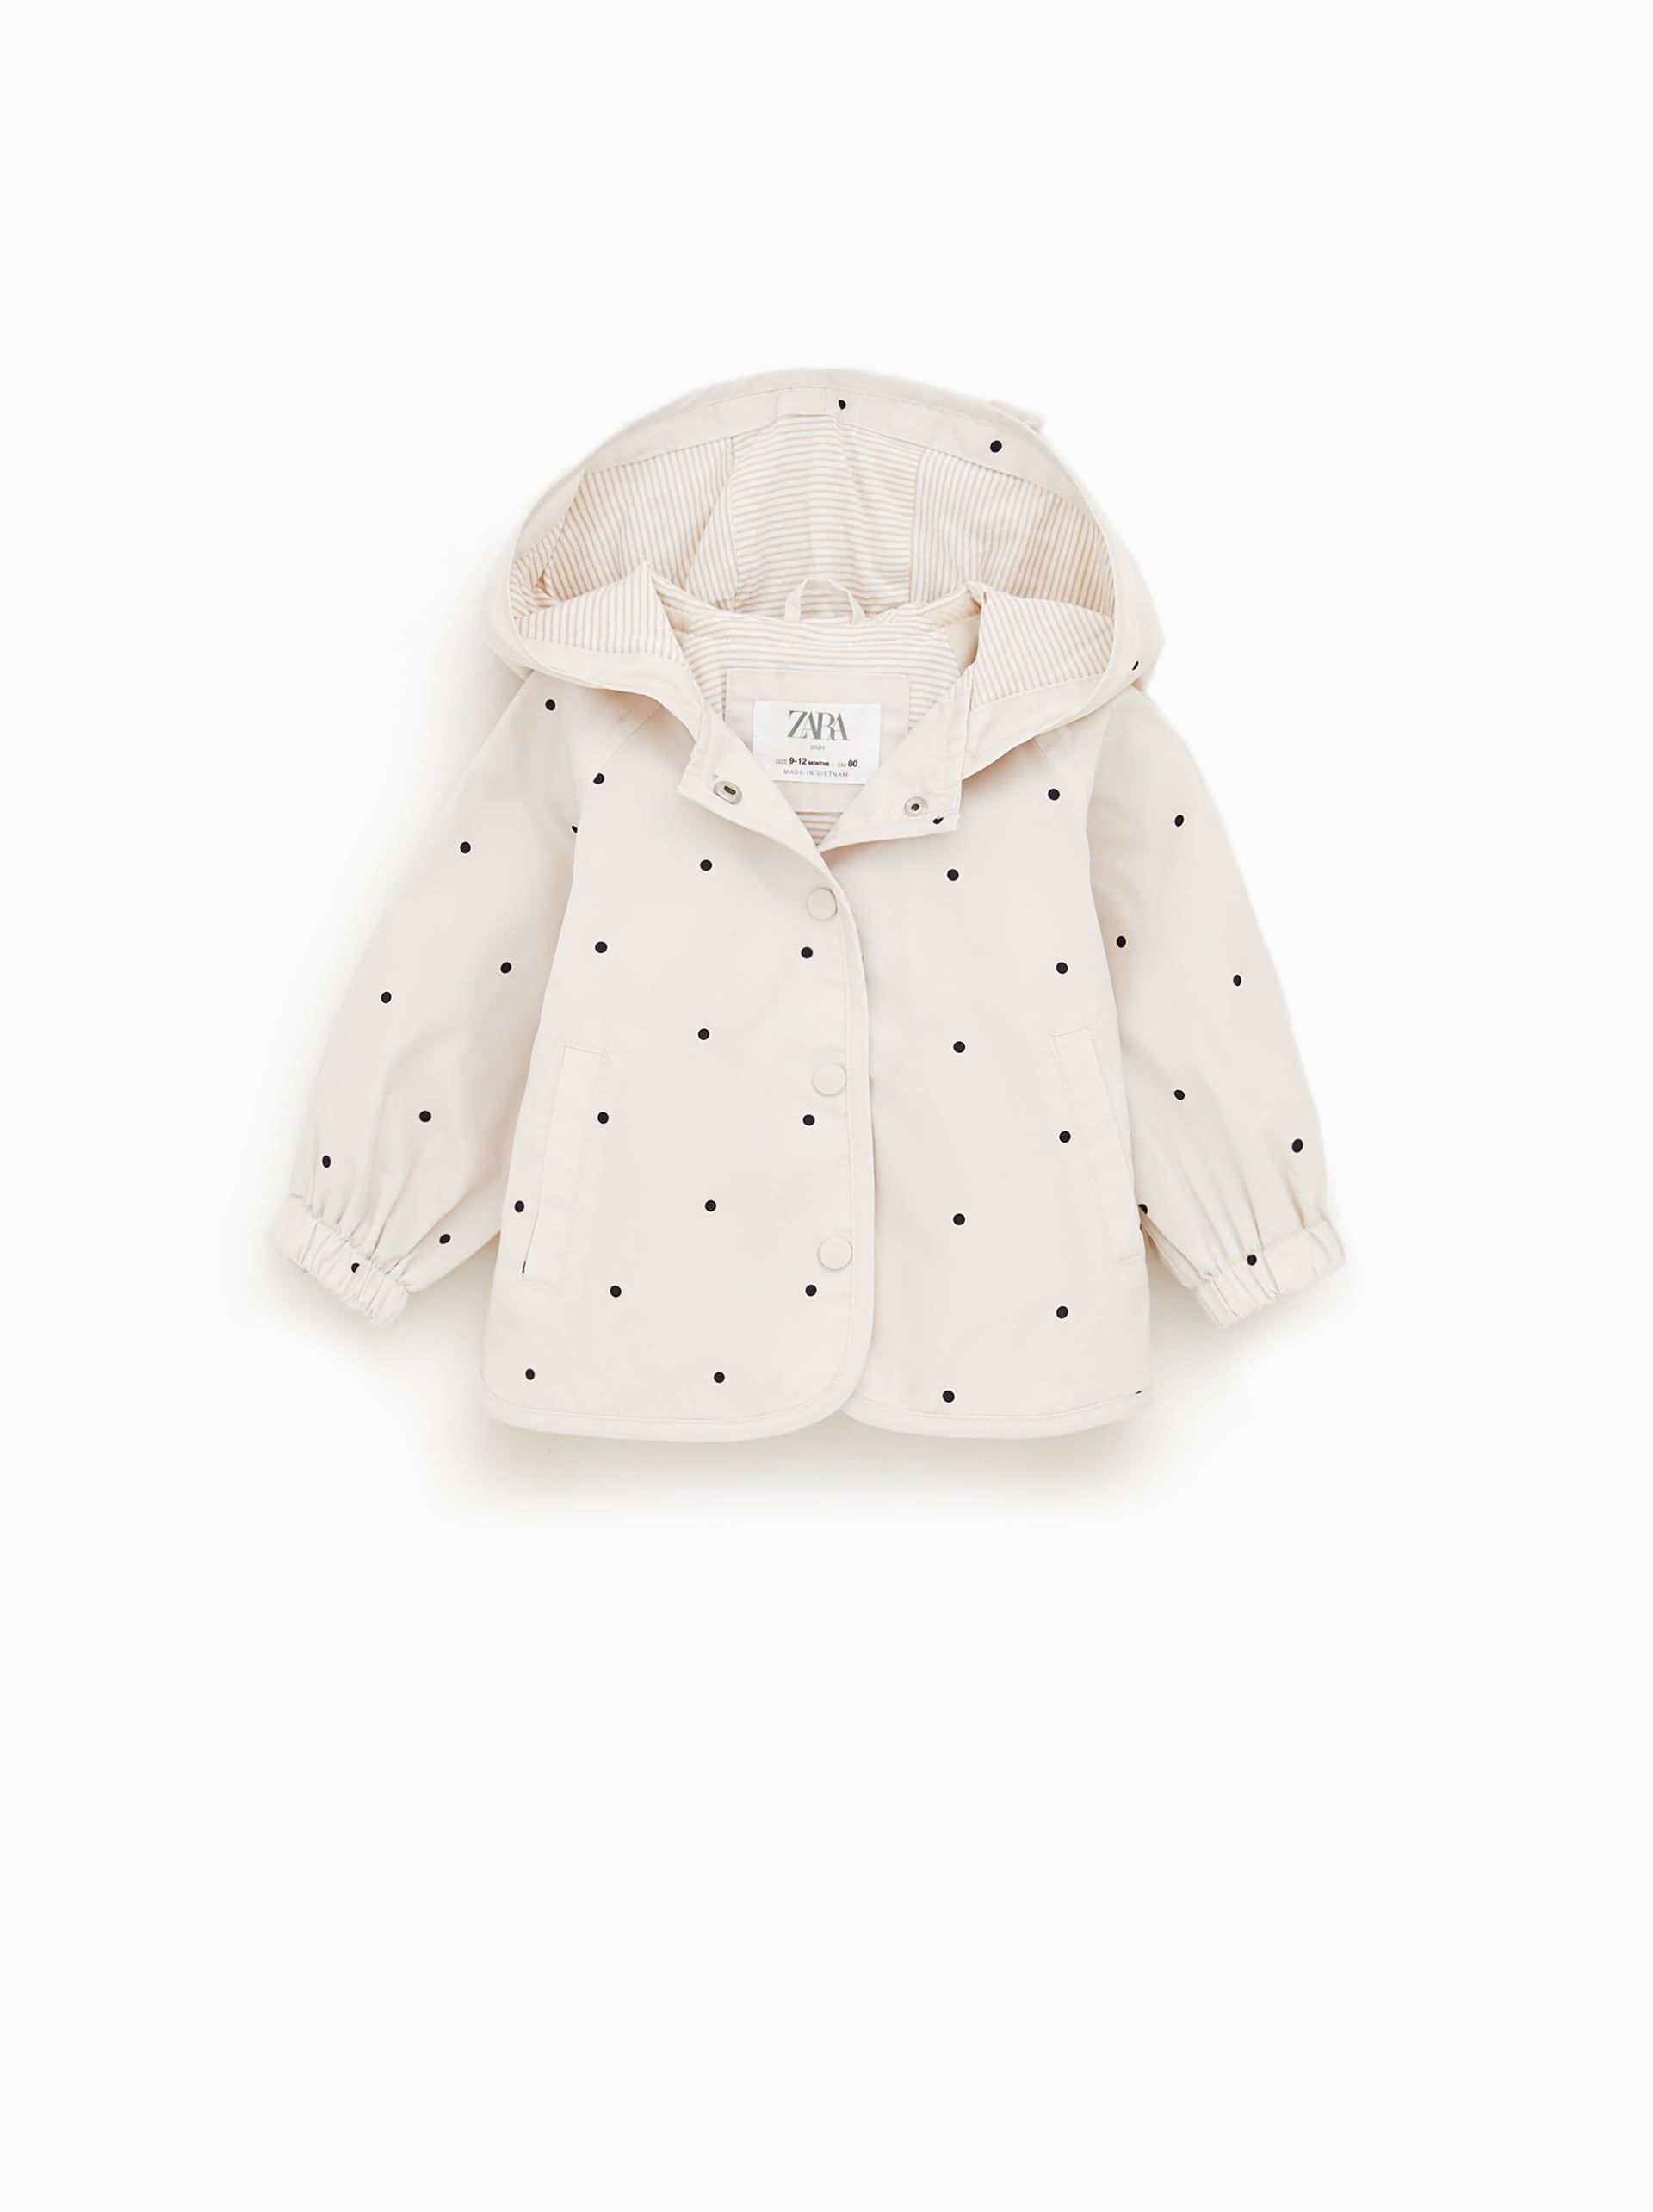 Printed Raincoat New In Baby Girl 3 Mth 4 Yrs Kids Zara United States Baby Regenmantel Regenmantel Zara Kinder